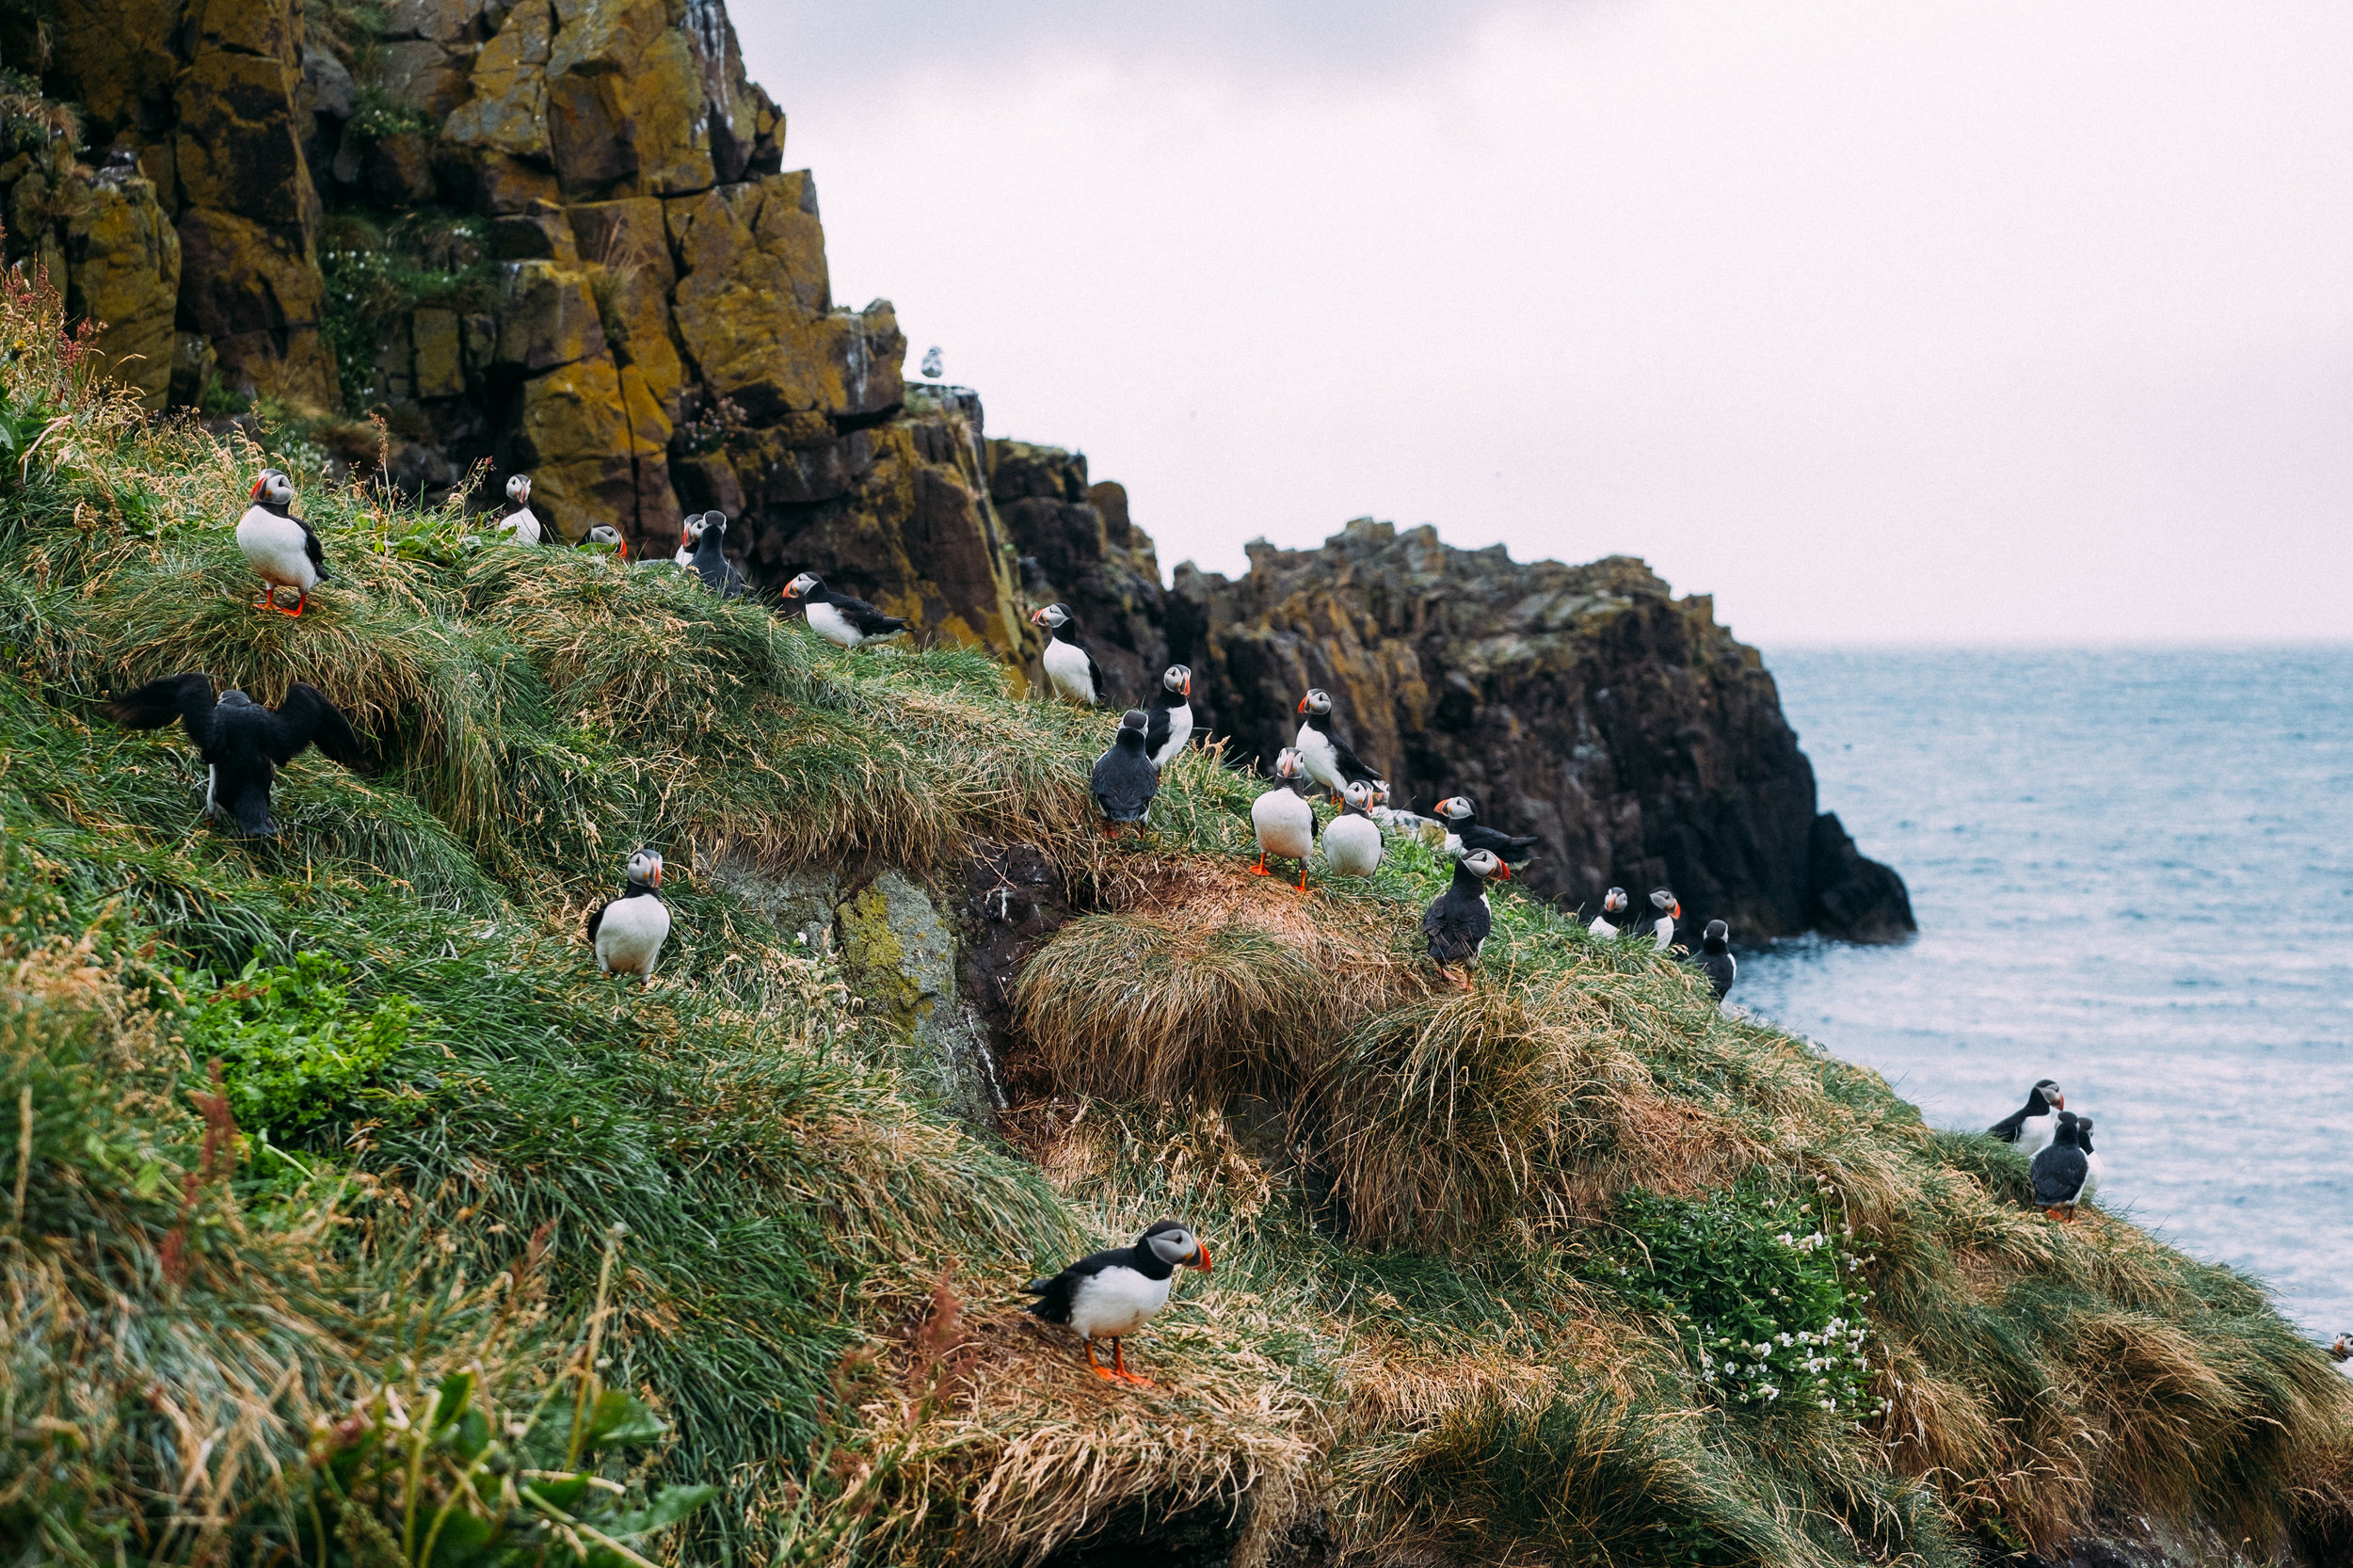 So many puffins.